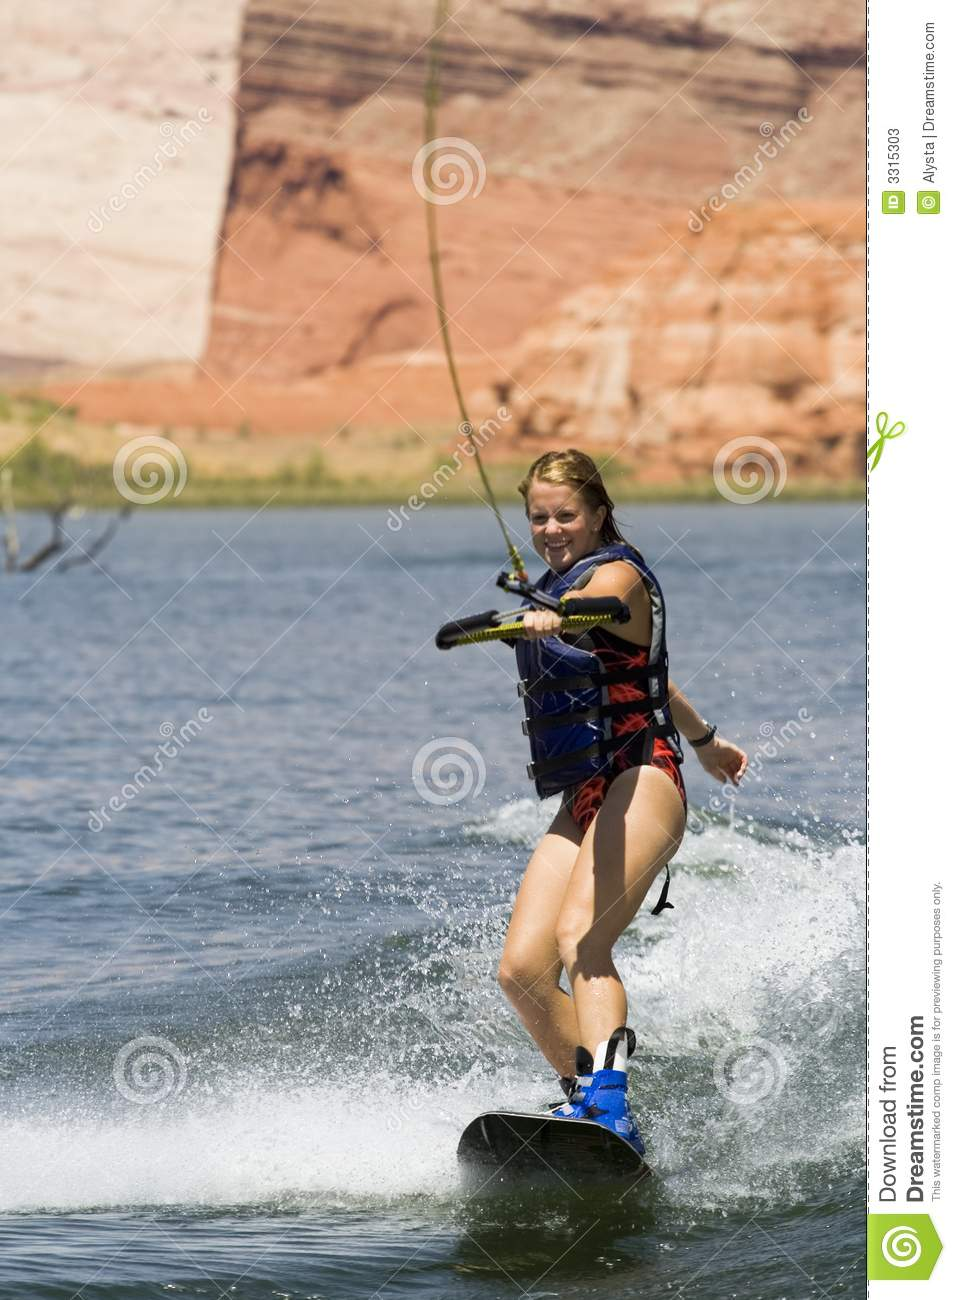 Girl Wakeboarding At Lake Powe Stock Photos - Image: 3315303